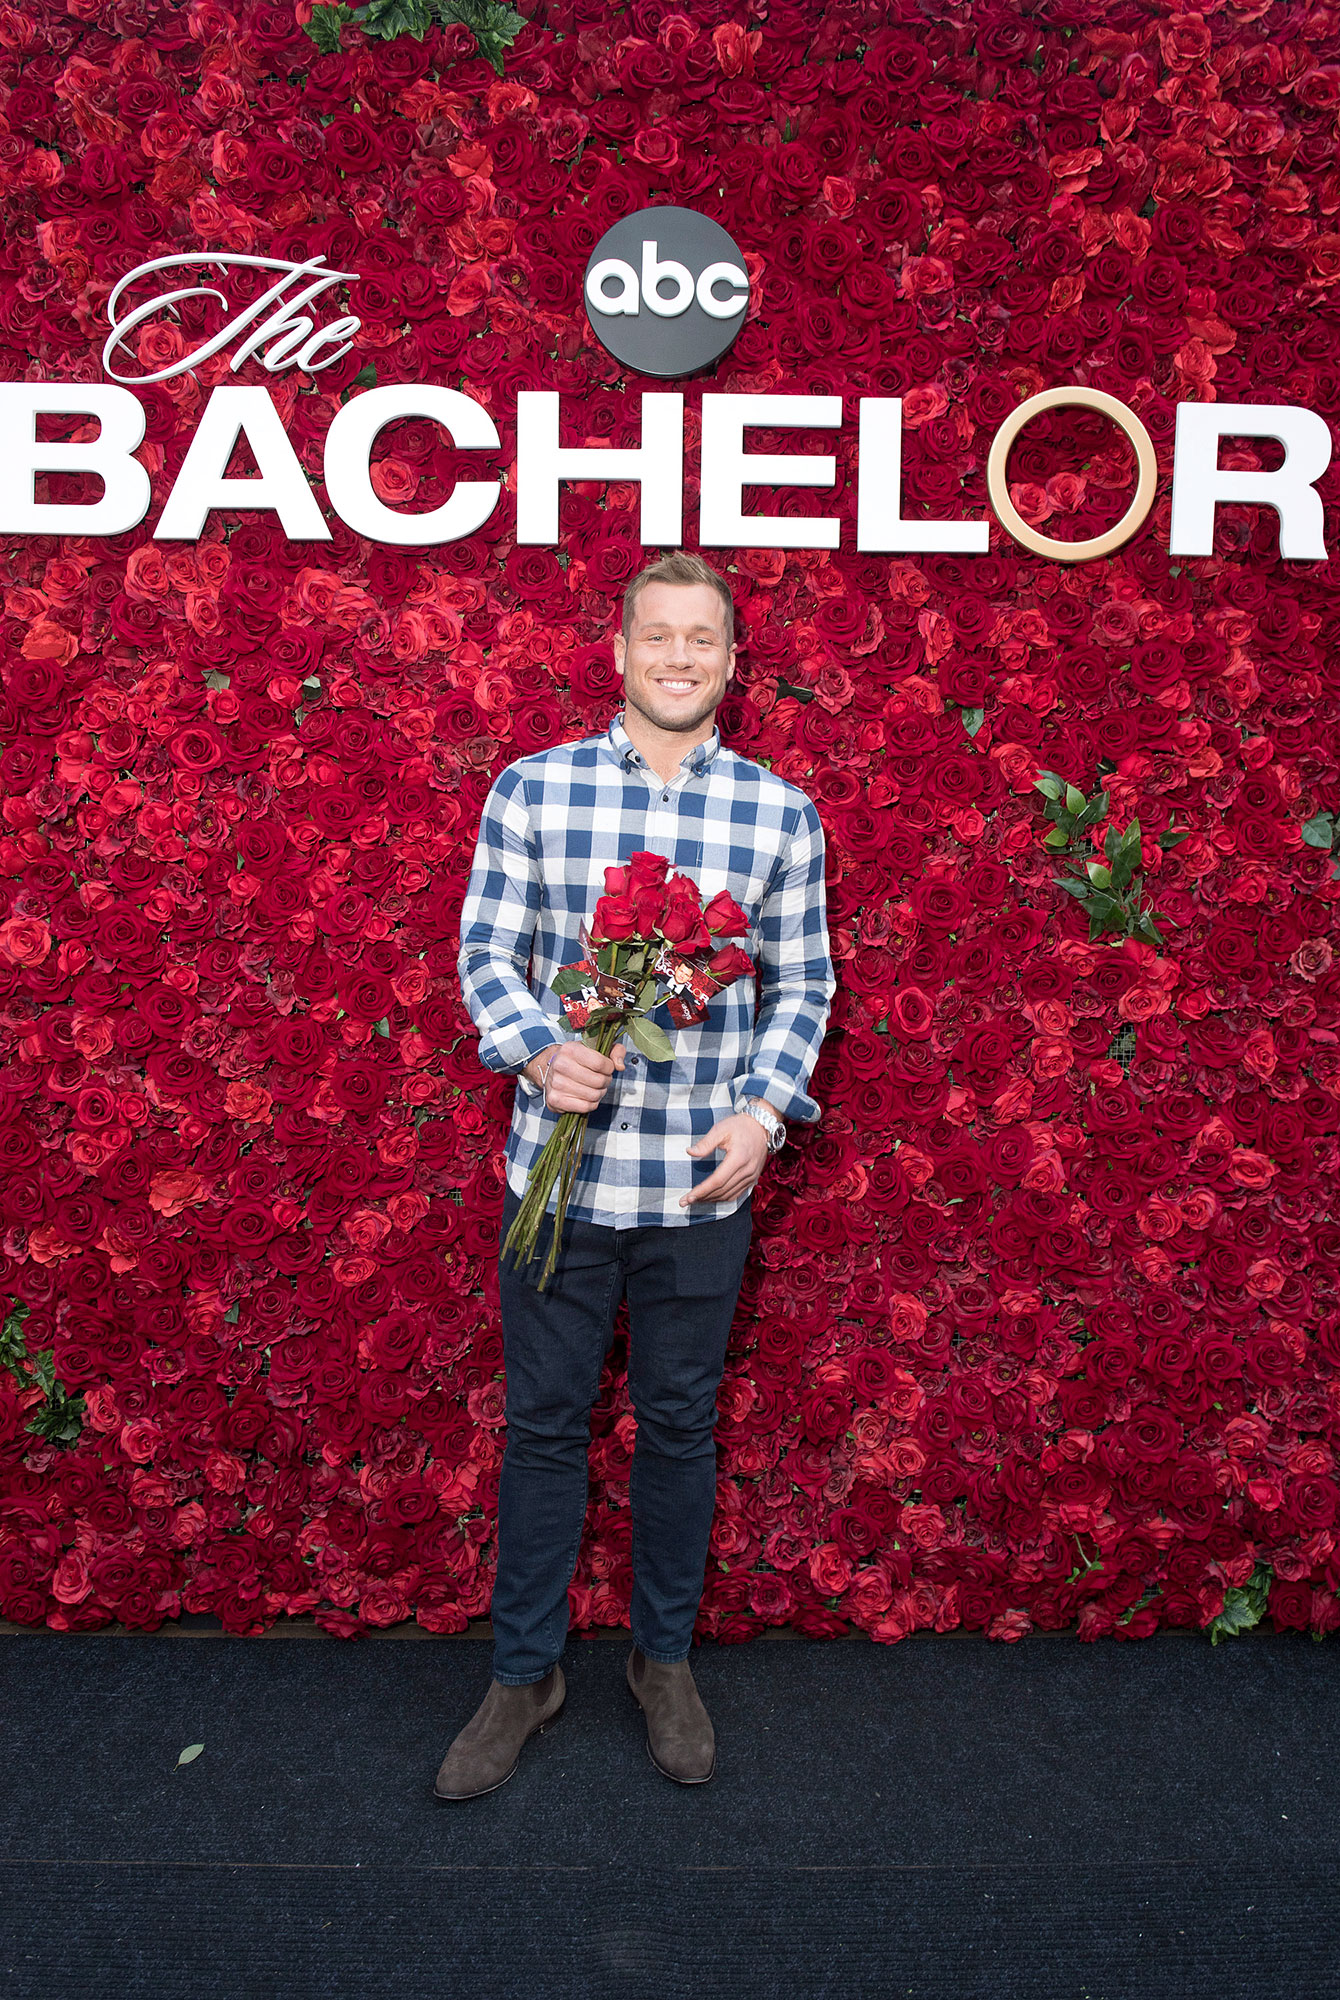 Who is marcus from the bachelorette hookup